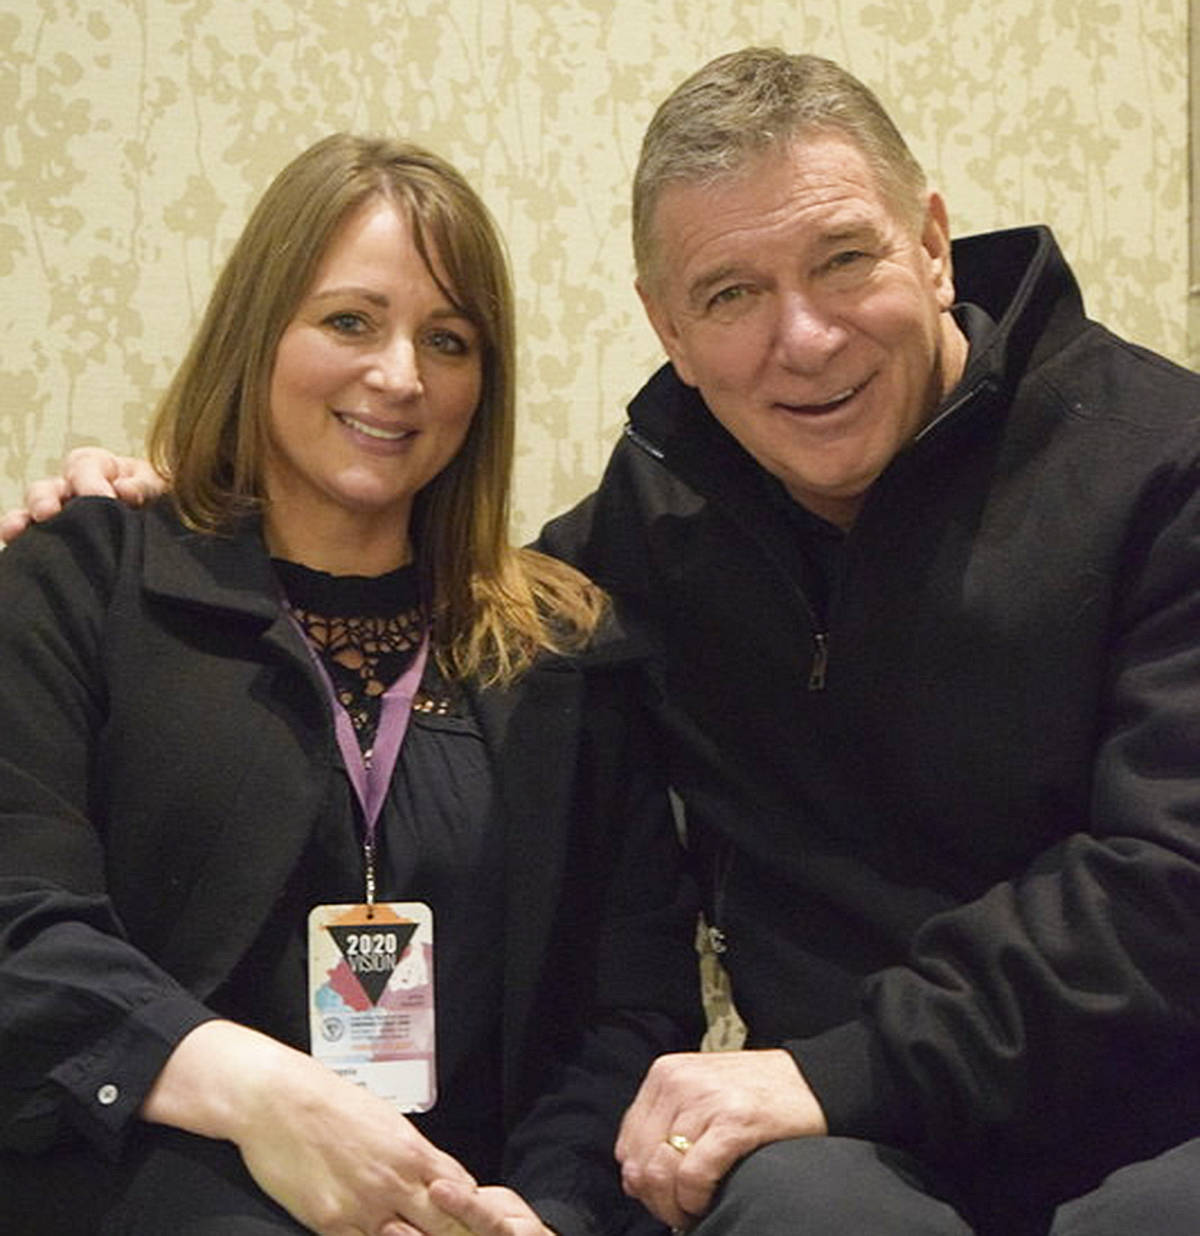 Angela Evennett takes a moment to pause for a photo with the Man in Motion, Rick Hansen. Angela is a big supporter of the Rick Hansen Foundation.